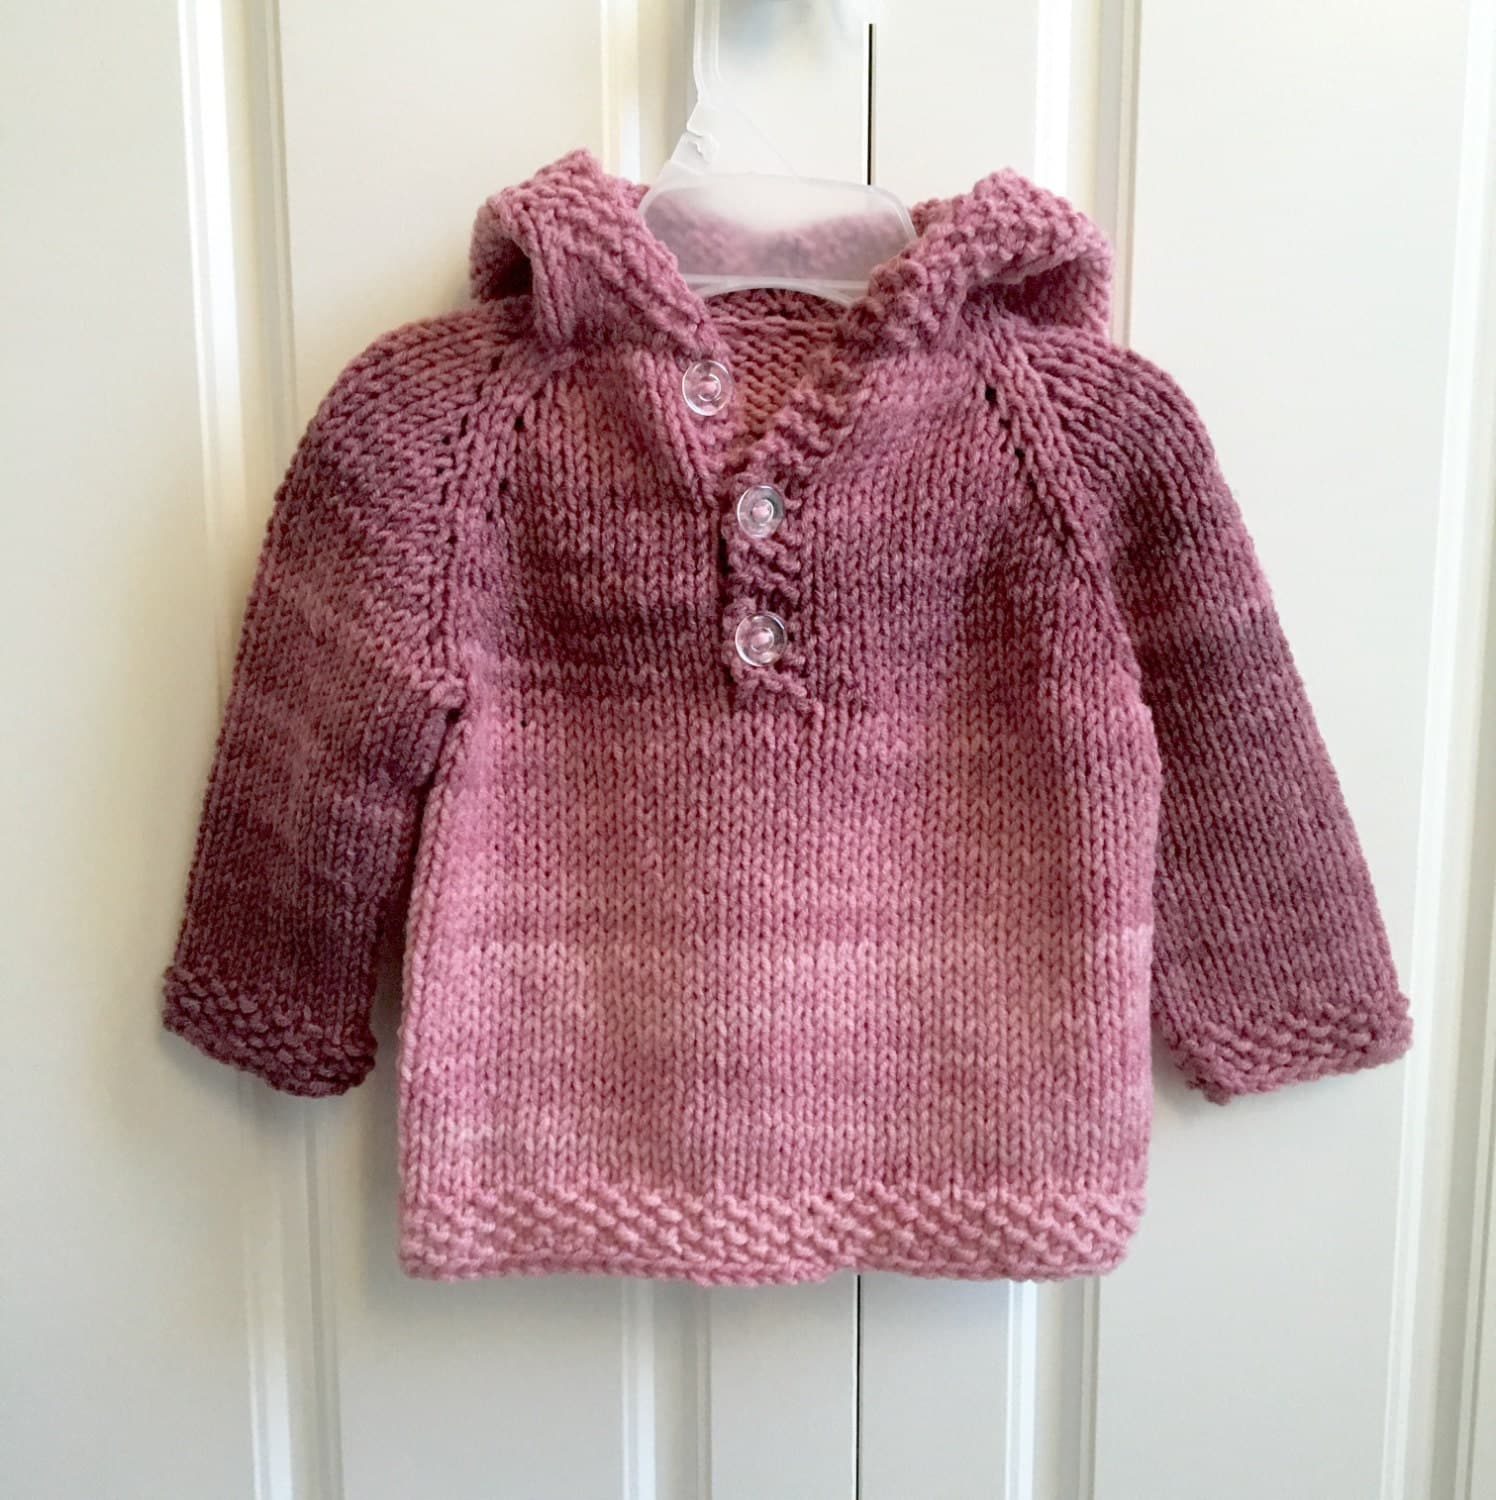 Baby Hooded Sweater Baby Clothes Pink Knit Sweater Ombre